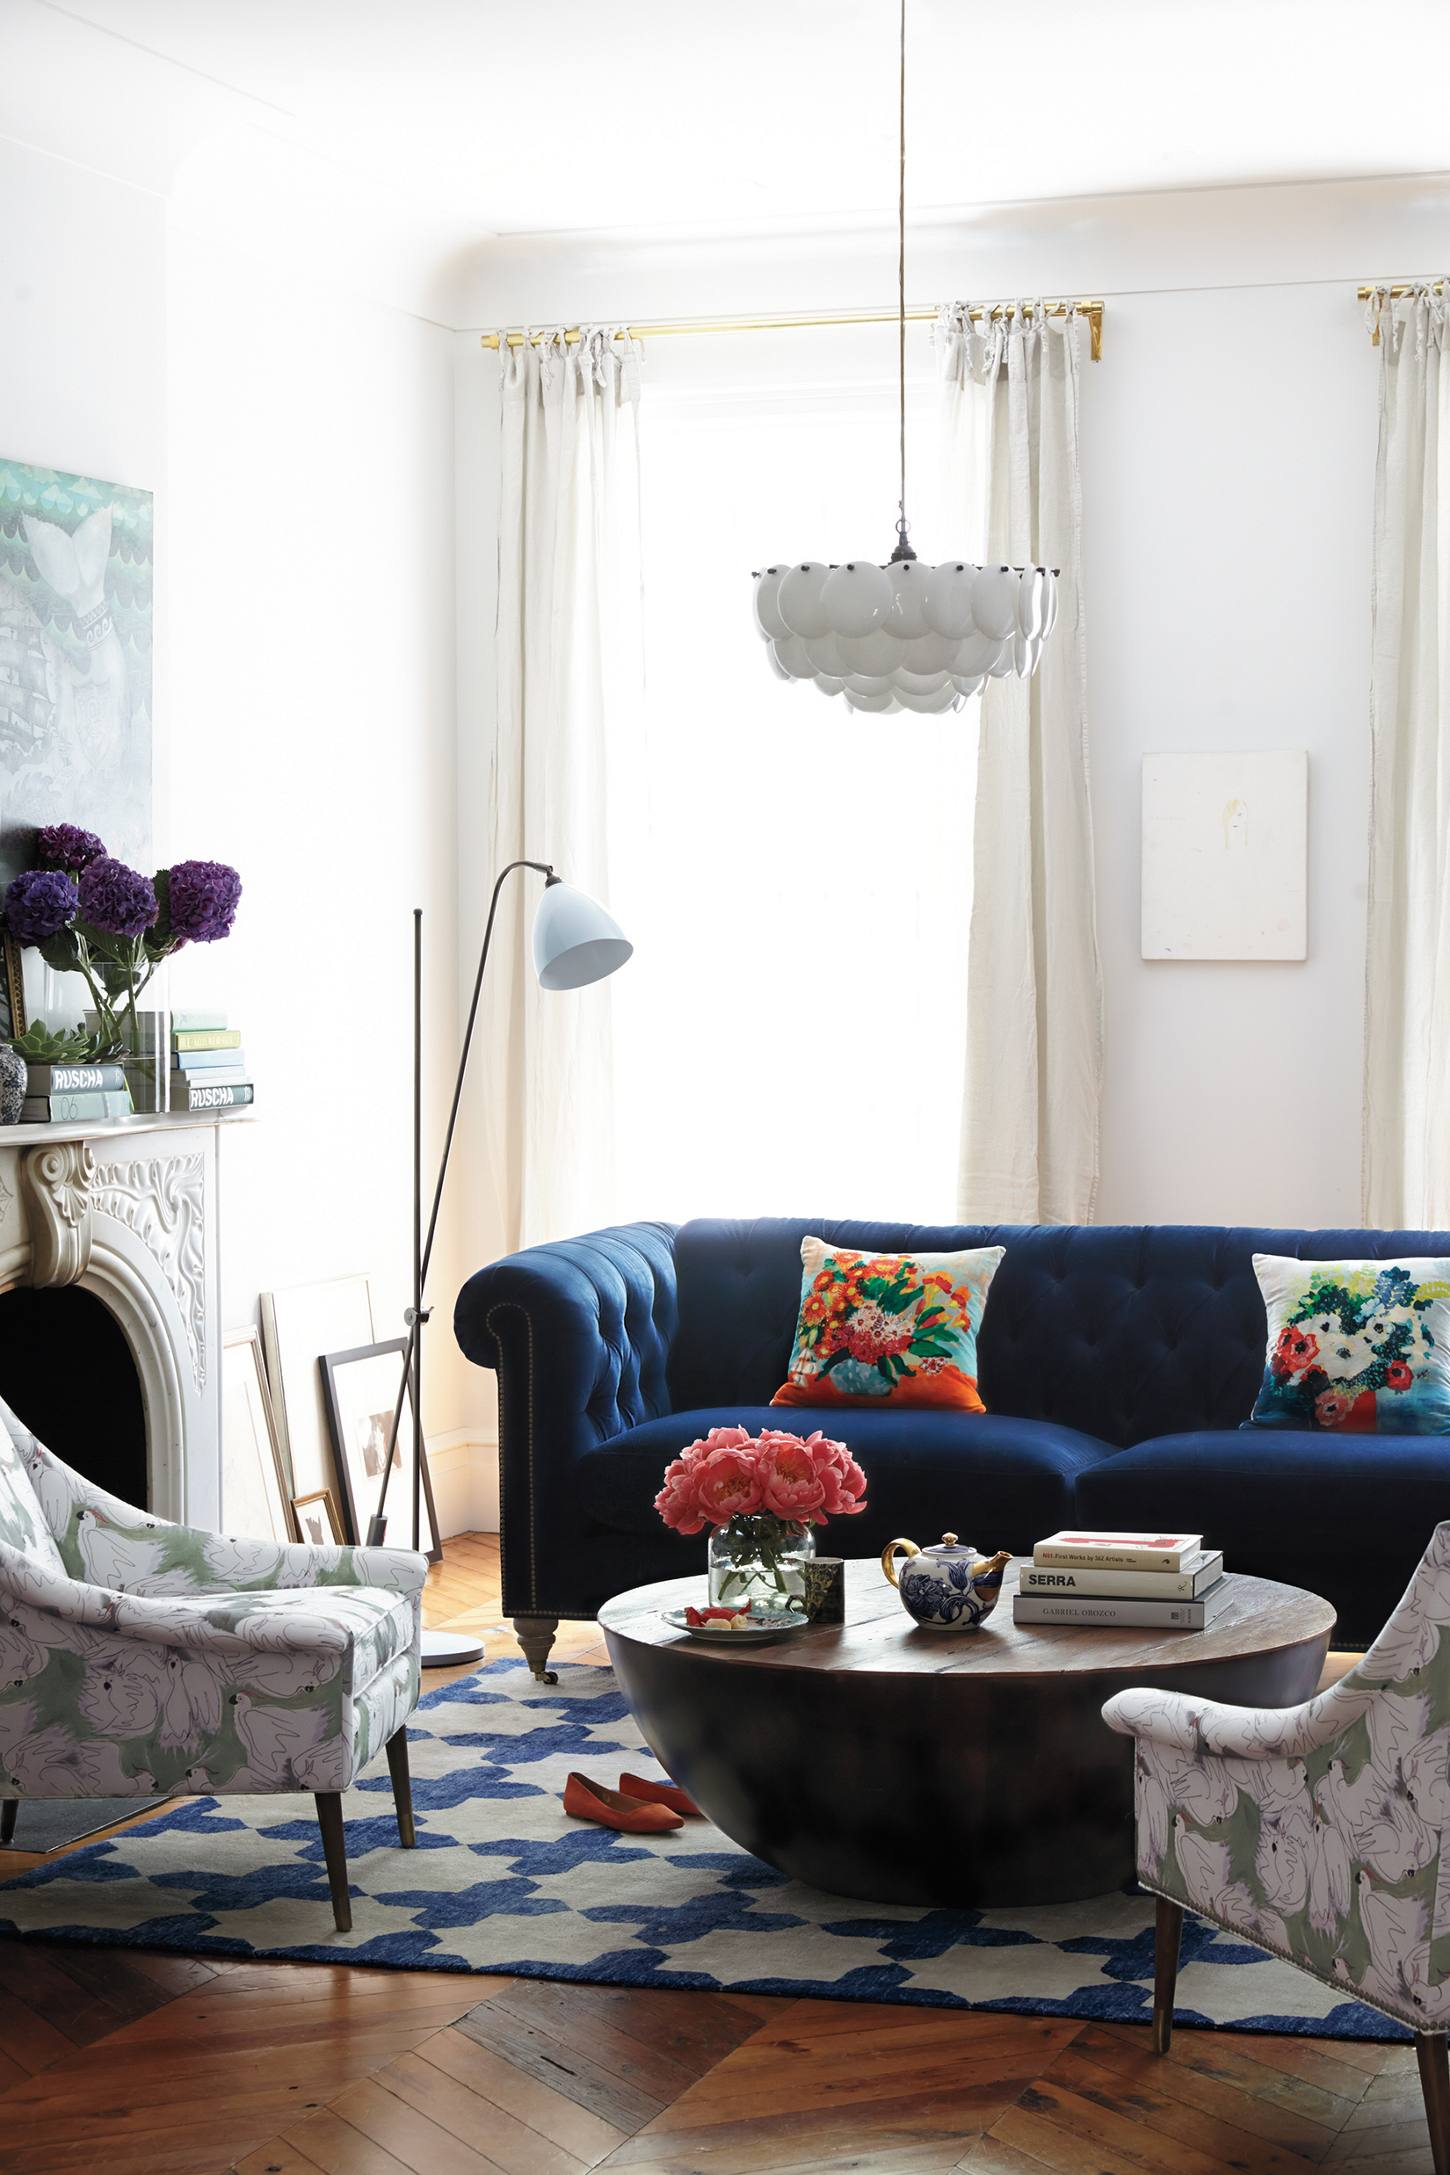 Sofa Pictures Living Room. Shop this Blue Velvet Sofa Lyle Chesterfield from Anthropologie 25 Stunning Living Rooms with Sofas